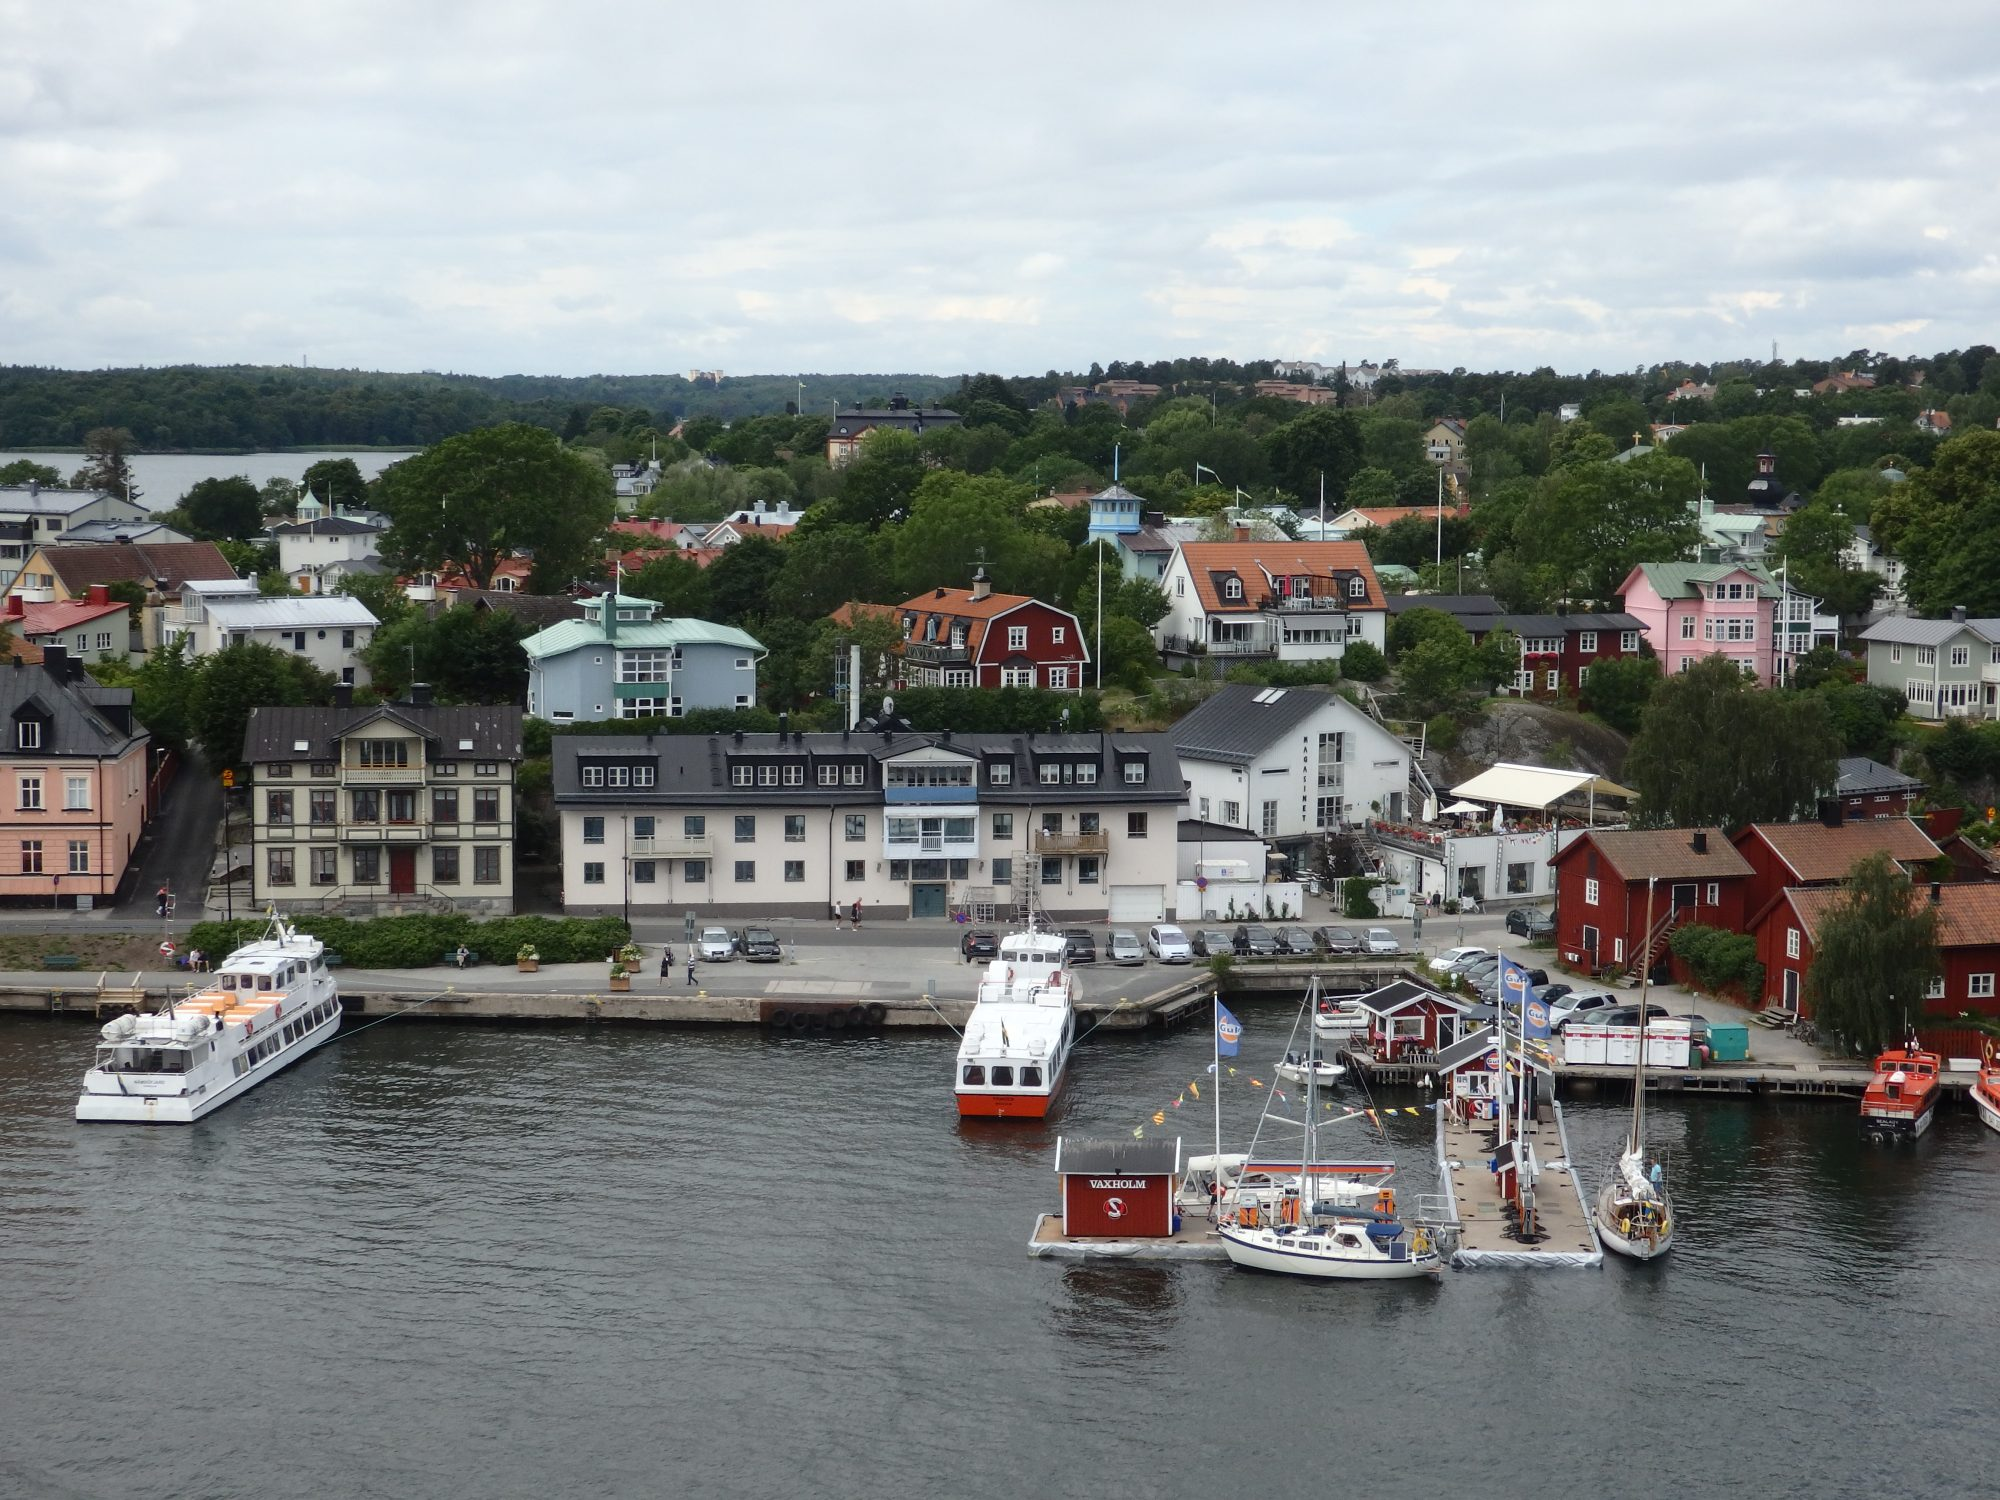 the small town across a narrow channel from Vaxholm, as seen from Vaxholm's tower roof